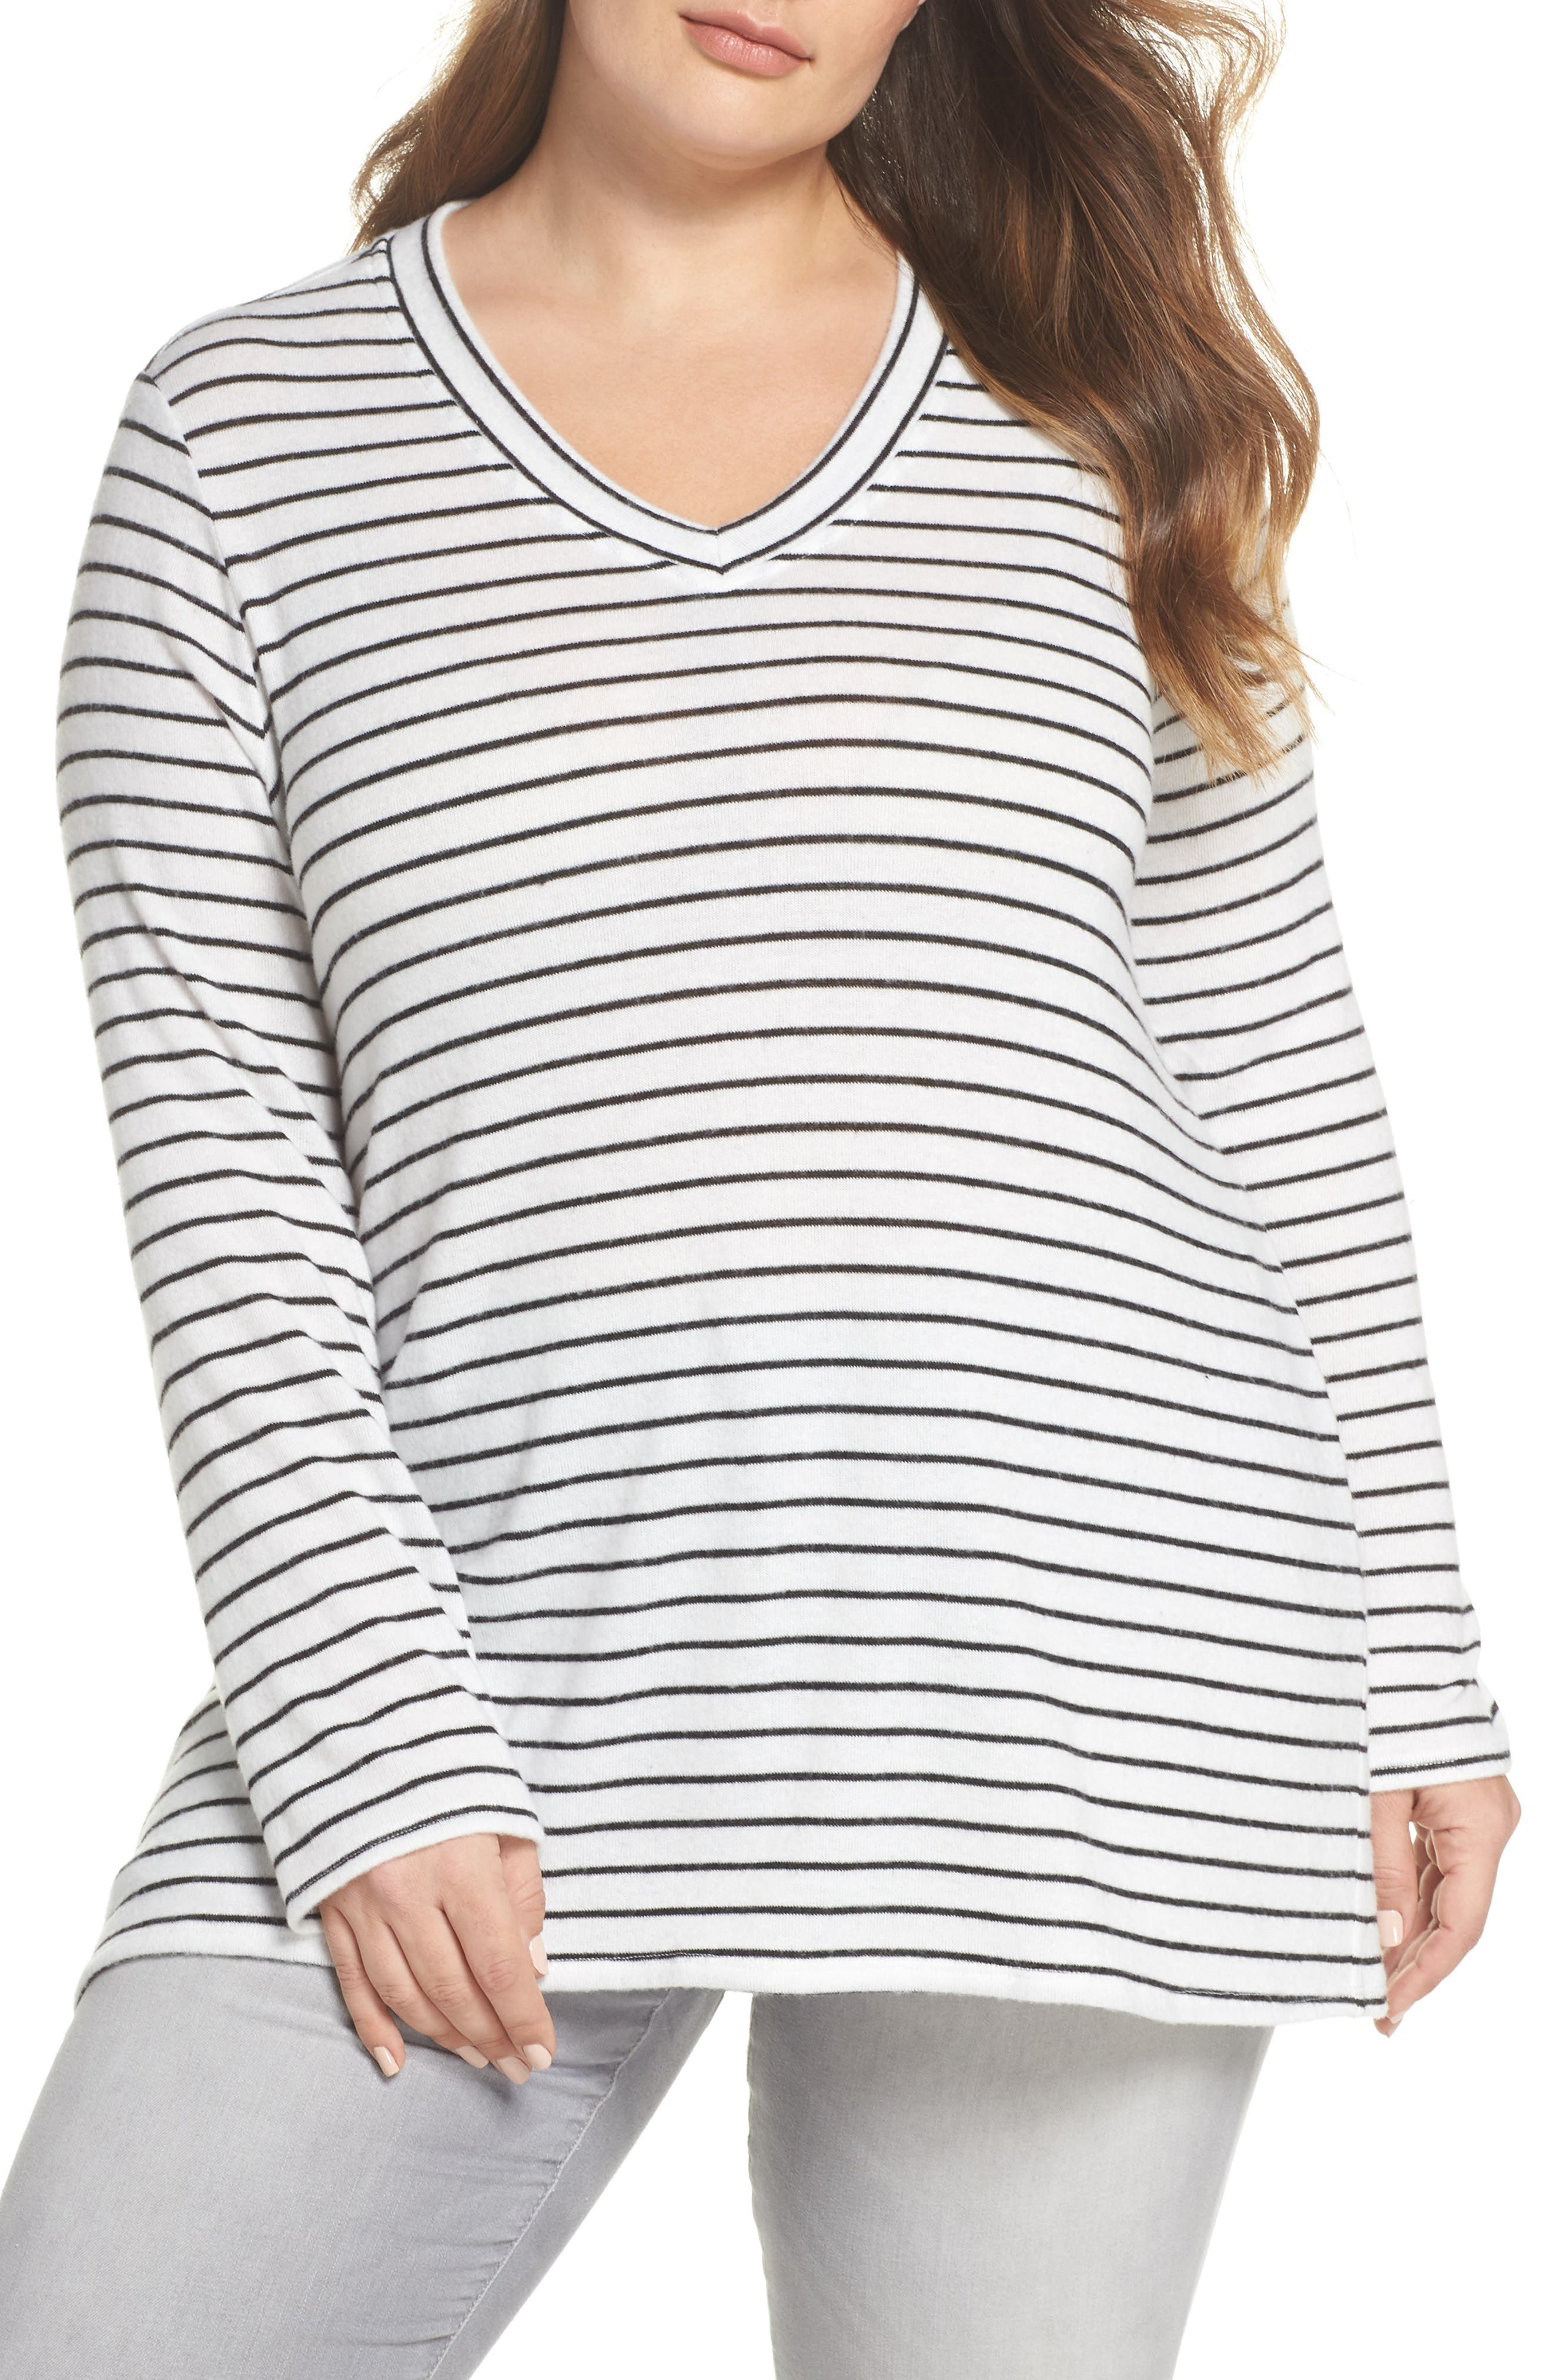 x Living in Yellow Steph Stripe Top,                             Main thumbnail 1, color,                             Black/ White Stripe